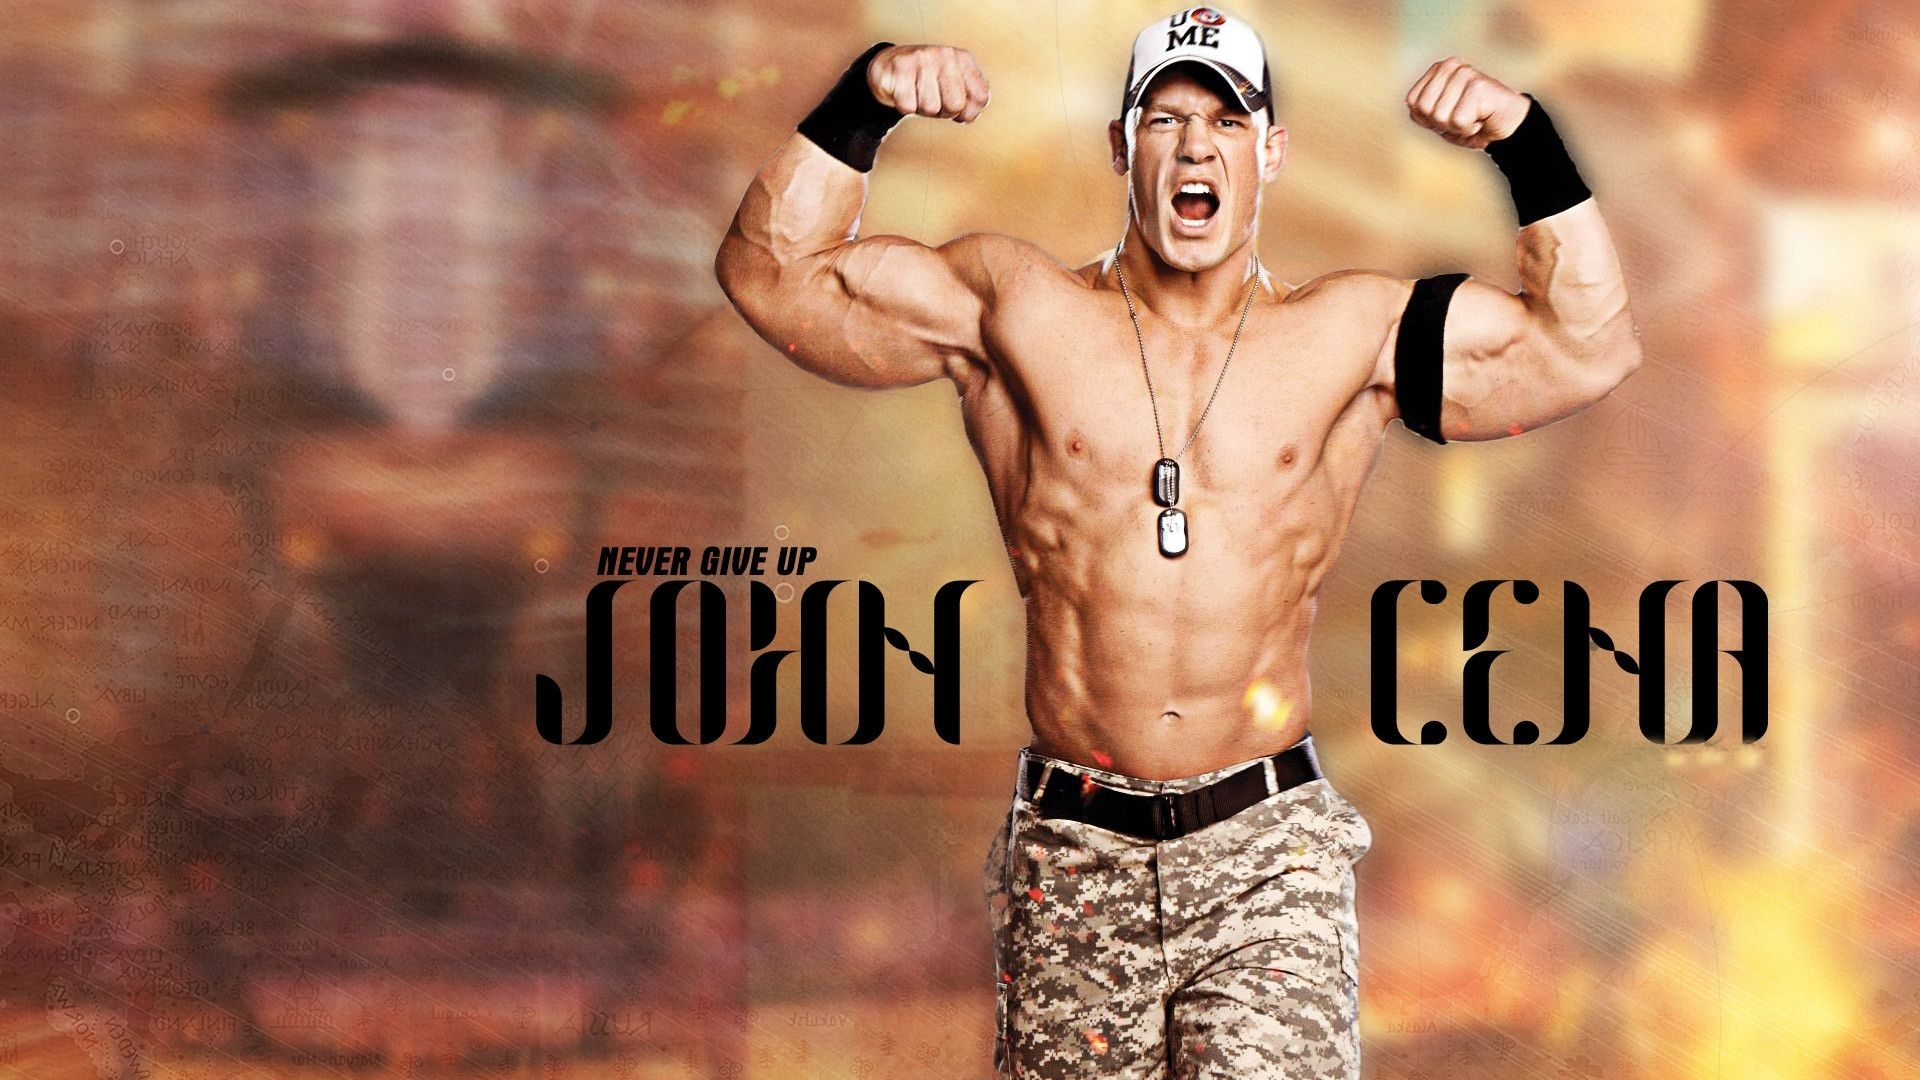 john cena wallpapers | hd wallpapers pulse